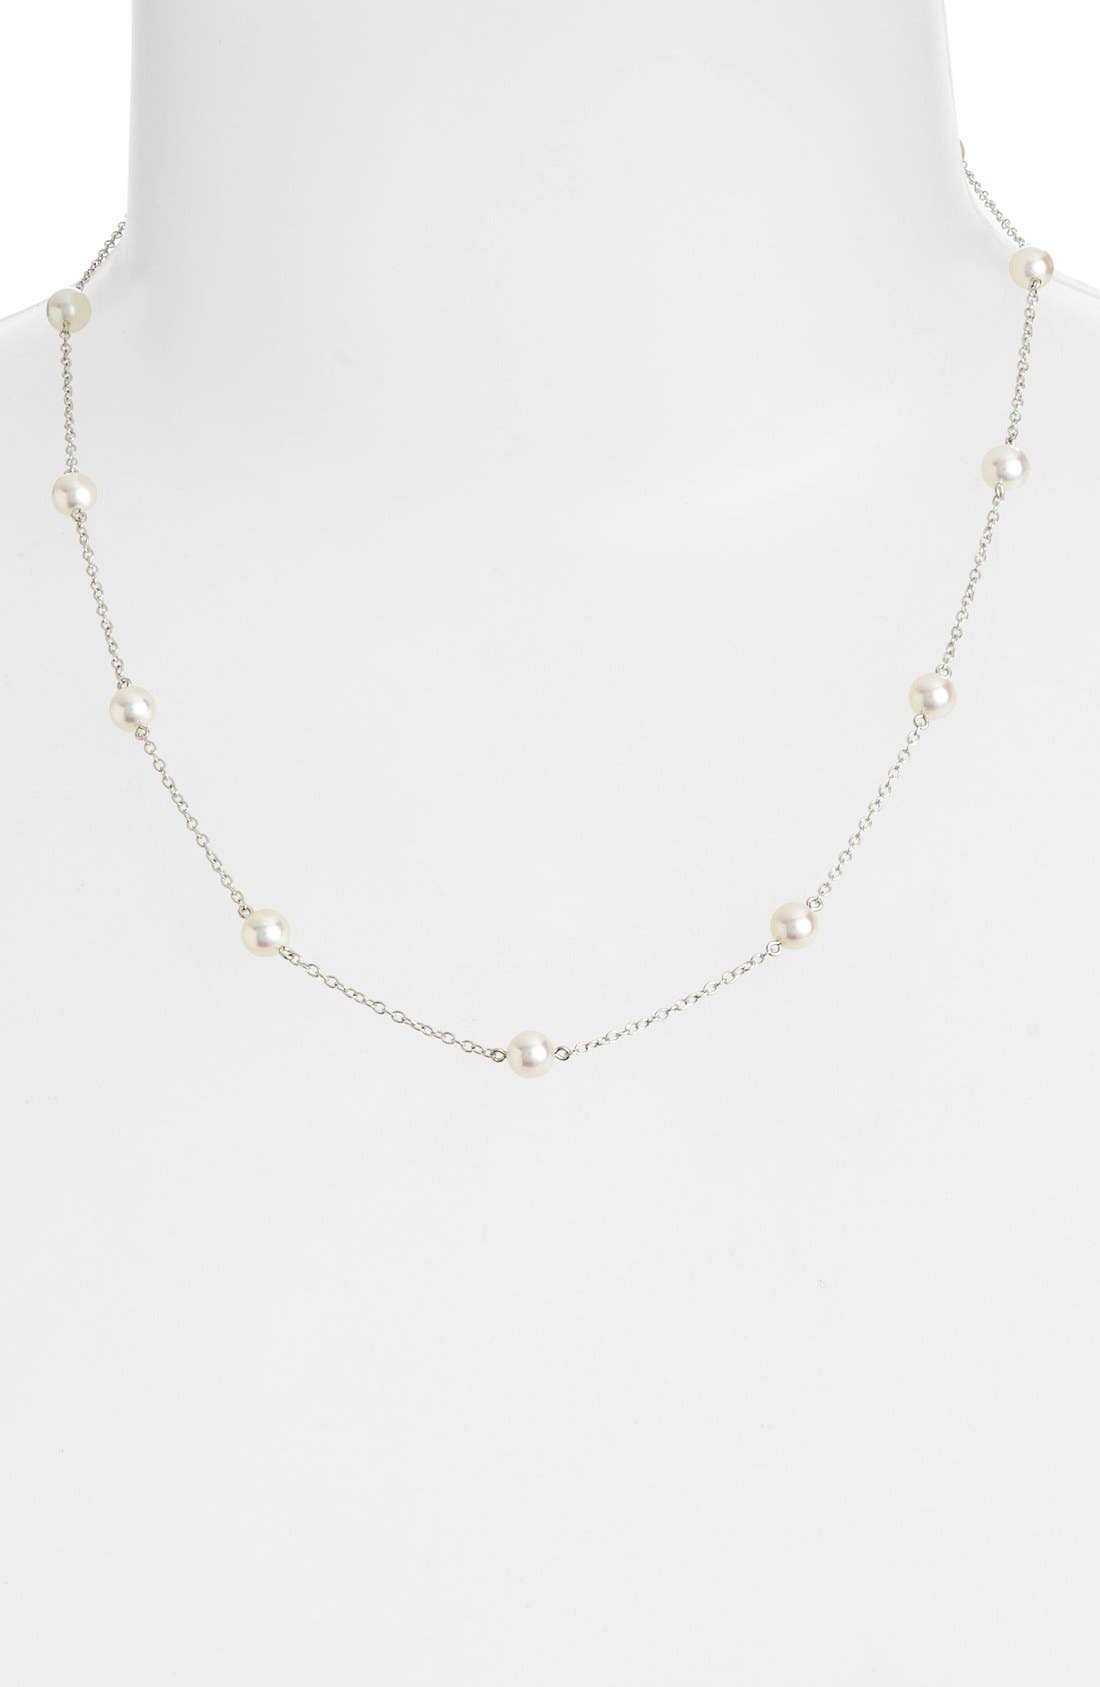 Mikimoto Chain & Pearl Necklace